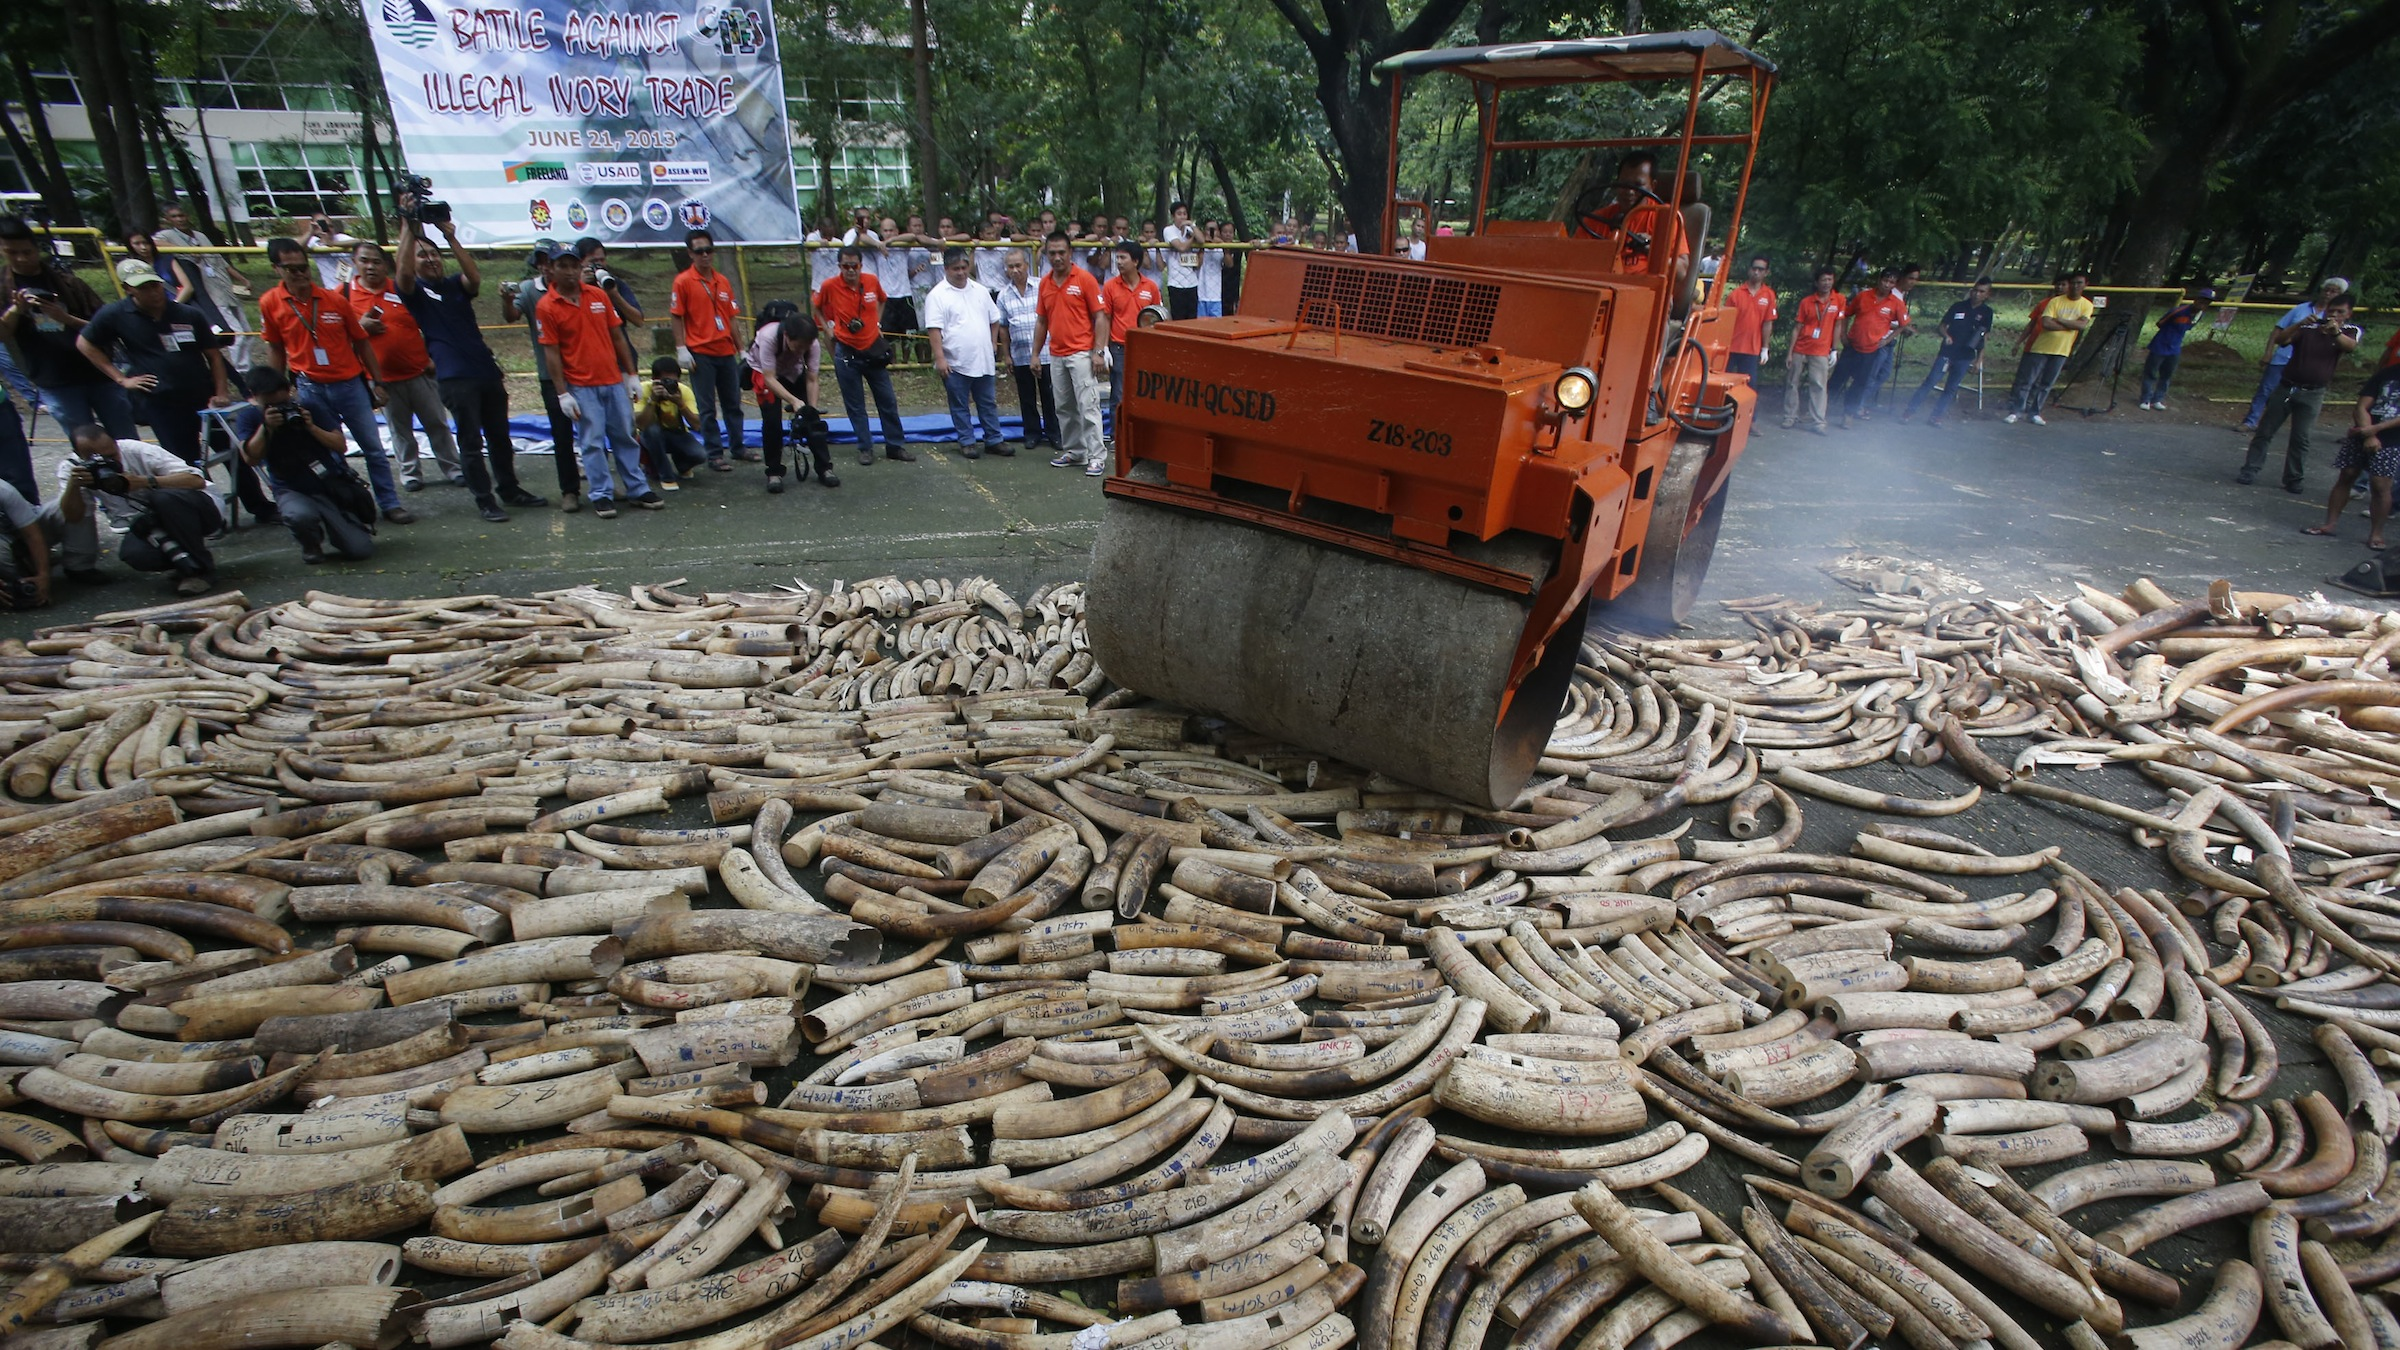 A road roller crushes smuggled elephant tusks, that had been confiscated, at the Parks and Wildlife center in Quezon City, Metro Manila on June 21, 2013. The Philippine government destroyed on Friday at least five tonnes of smuggled elephant tusks, making the Philippines the first country in Asia to conduct physical destruction of massive ivory stockpiles in support of government efforts to stamp out illegal wildlife trade, a statement from Department of Environment and Natural Resources said.  REUTERS/Erik De Castro (PHILIPPINES - Tags: SOCIETY ENVIRONMENT CRIME LAW TPX IMAGES OF THE DAY ANIMALS) - RTX10VV0